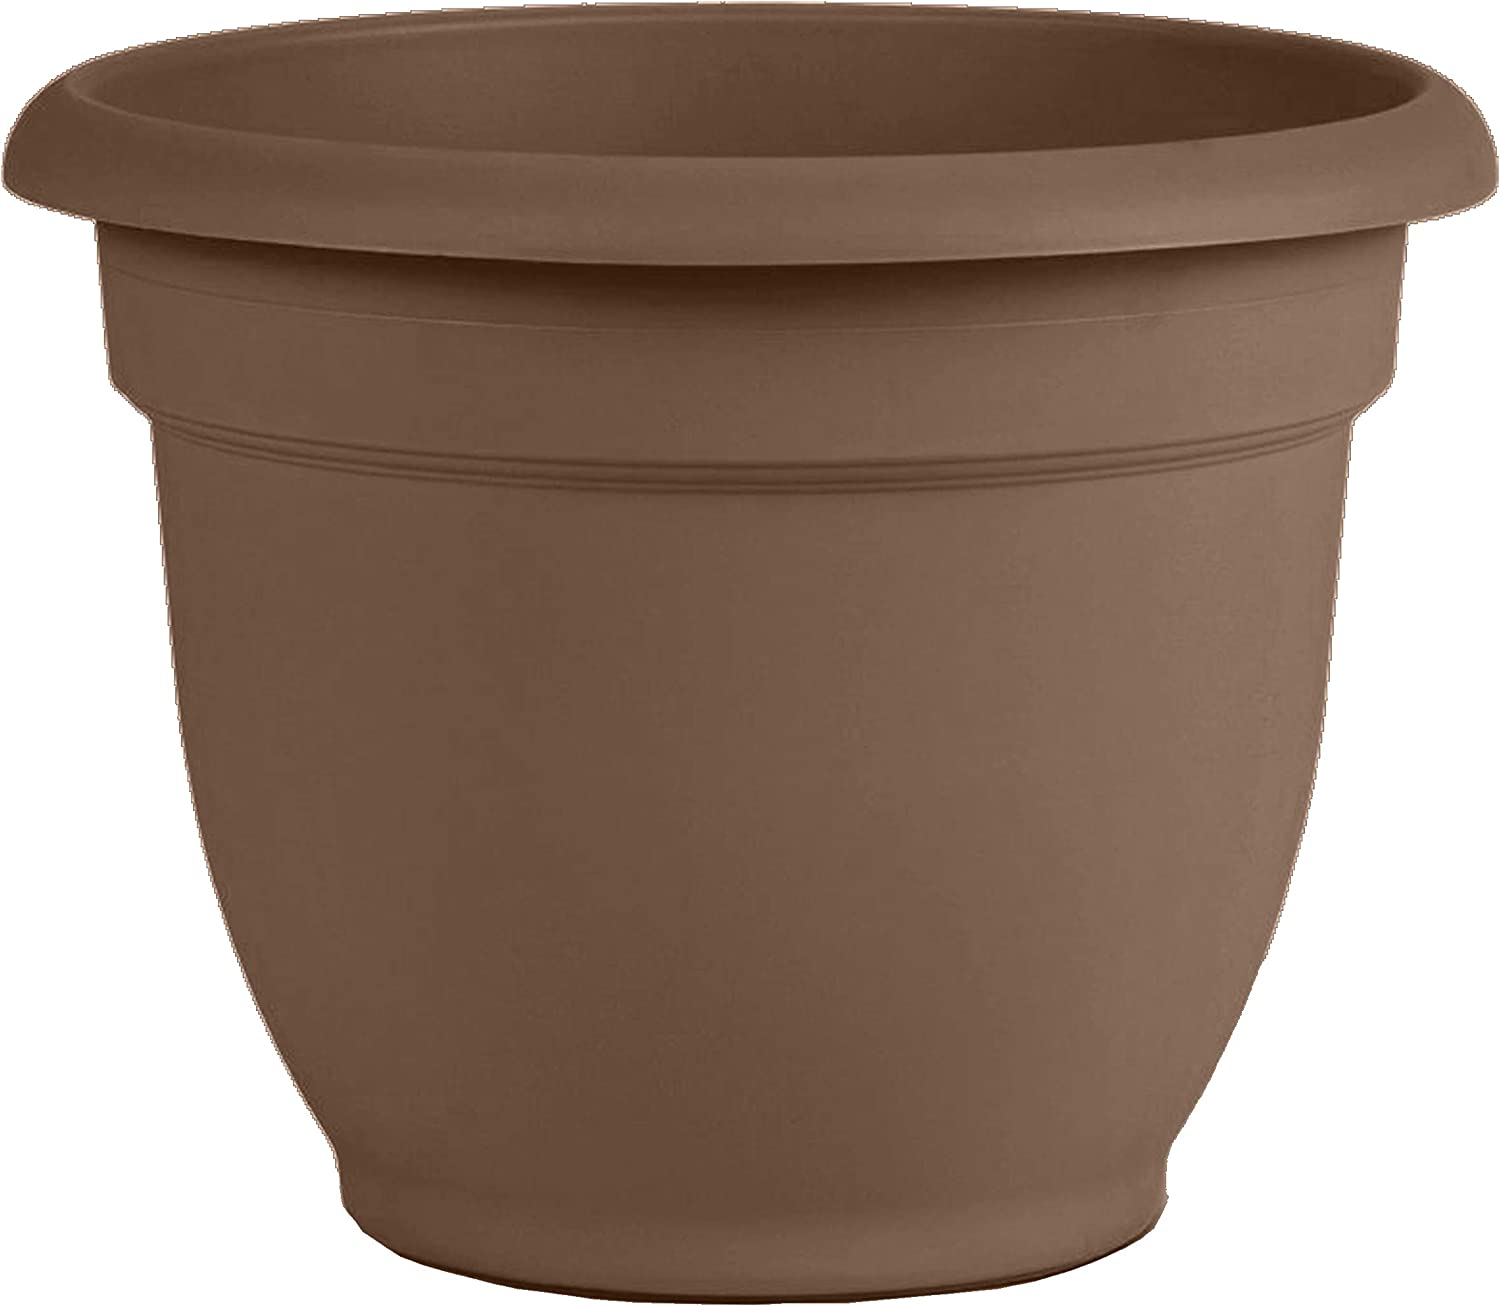 Bloem 20-56308CH Ariana Self Watering Planter, 8 , Chocolate, 8 Inch, Browns